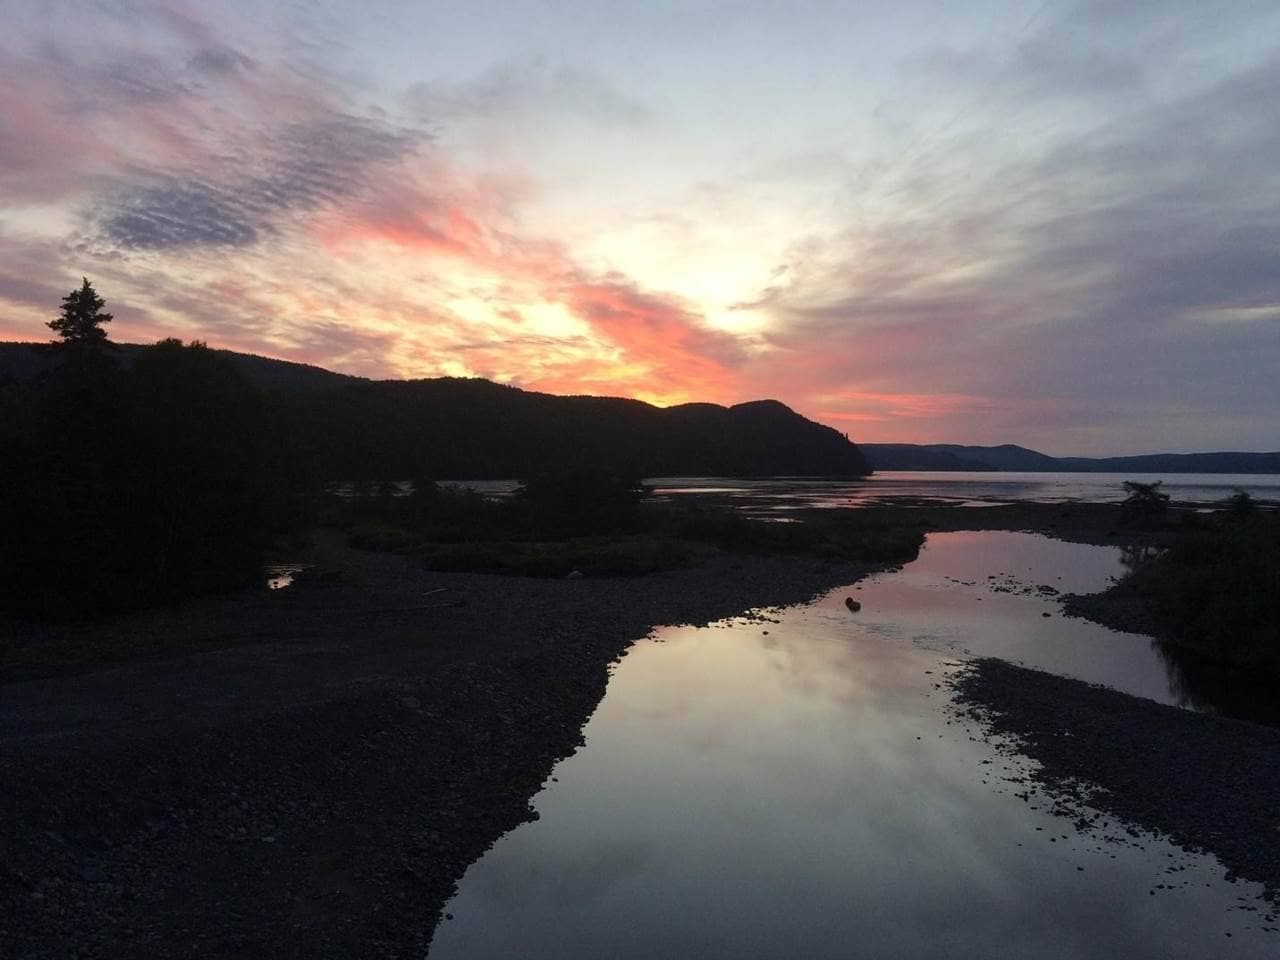 Sunrise in St. Alban's, Newfoundland and Labrador